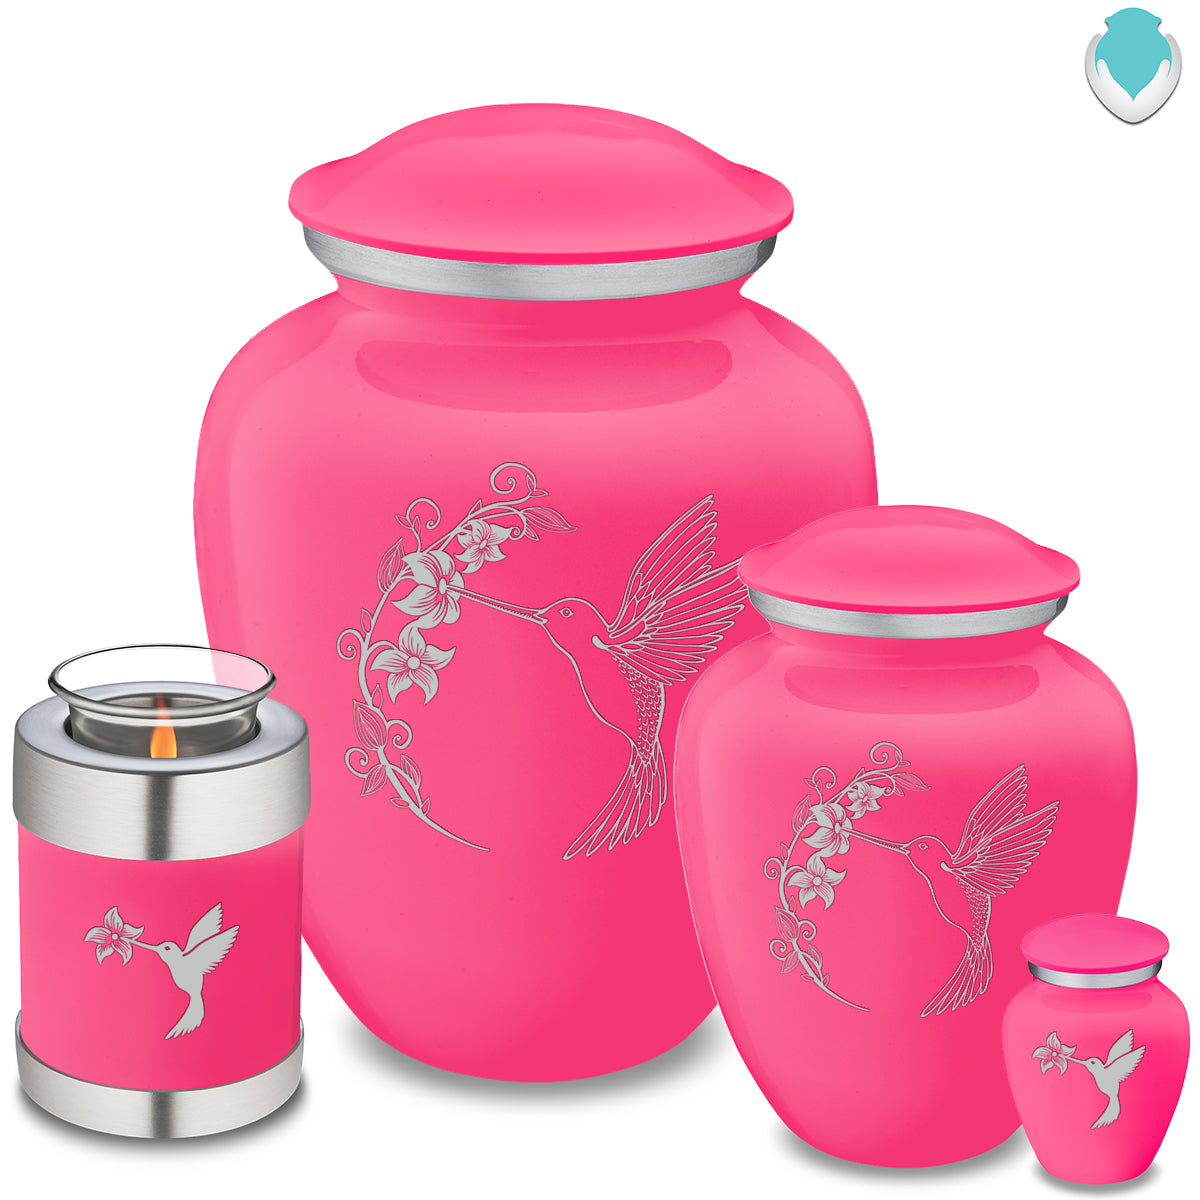 Adult Embrace Bright Pink Hummingbird Cremation Urn